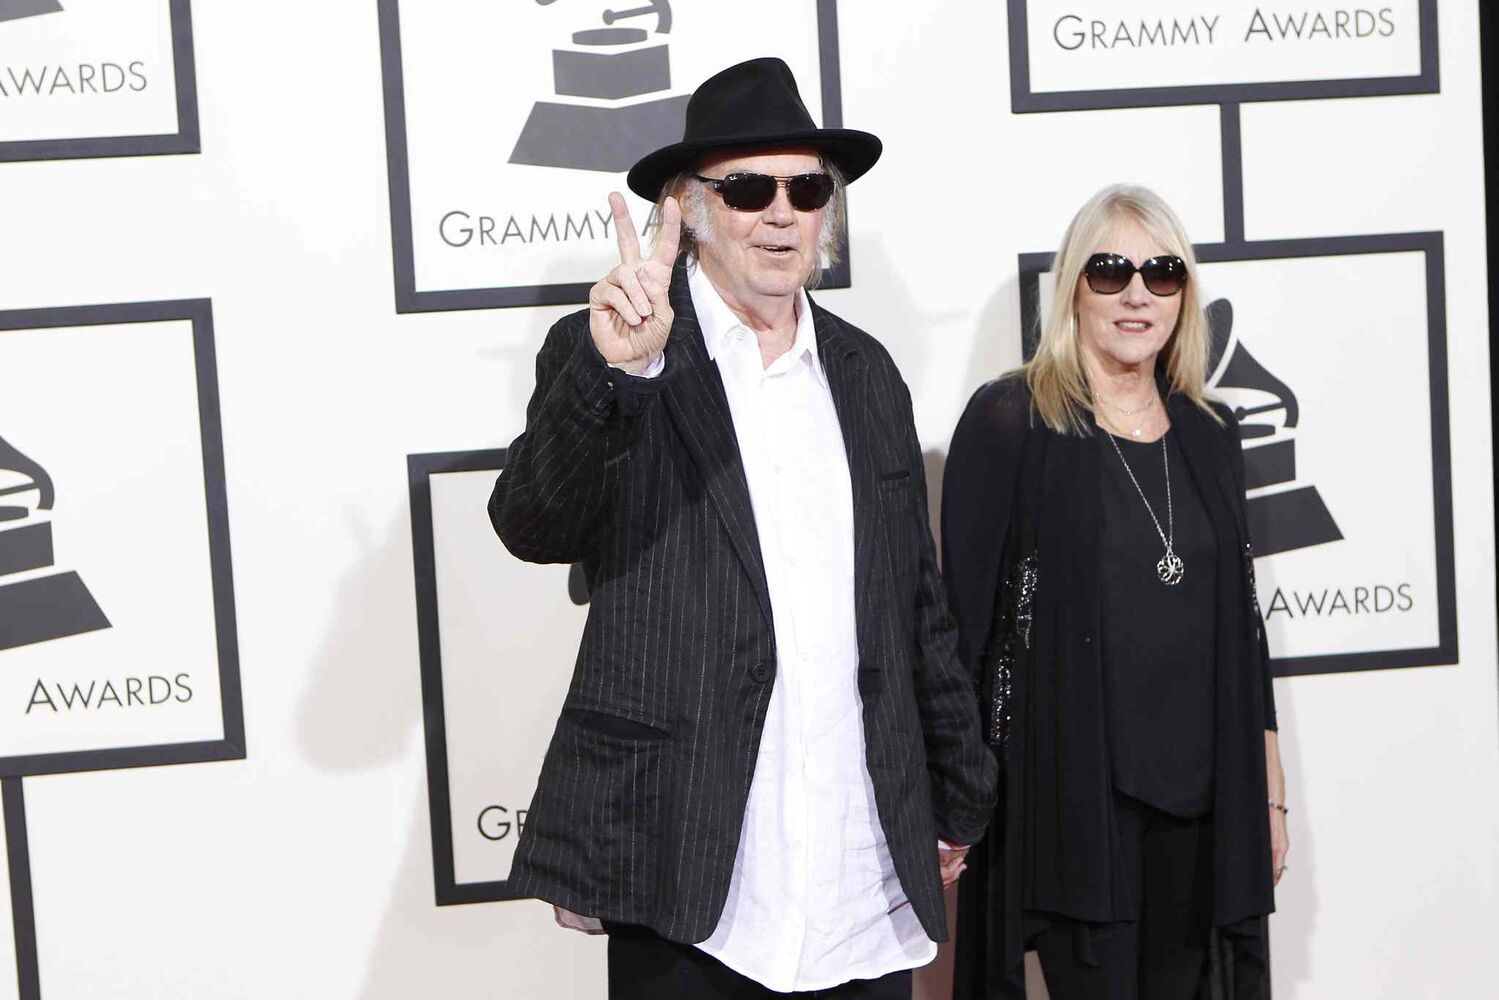 Neil Young and his wife Pegi arrive at the 56th Annual Grammy Awards. (Wally Skalij / Tribune Media MCT)